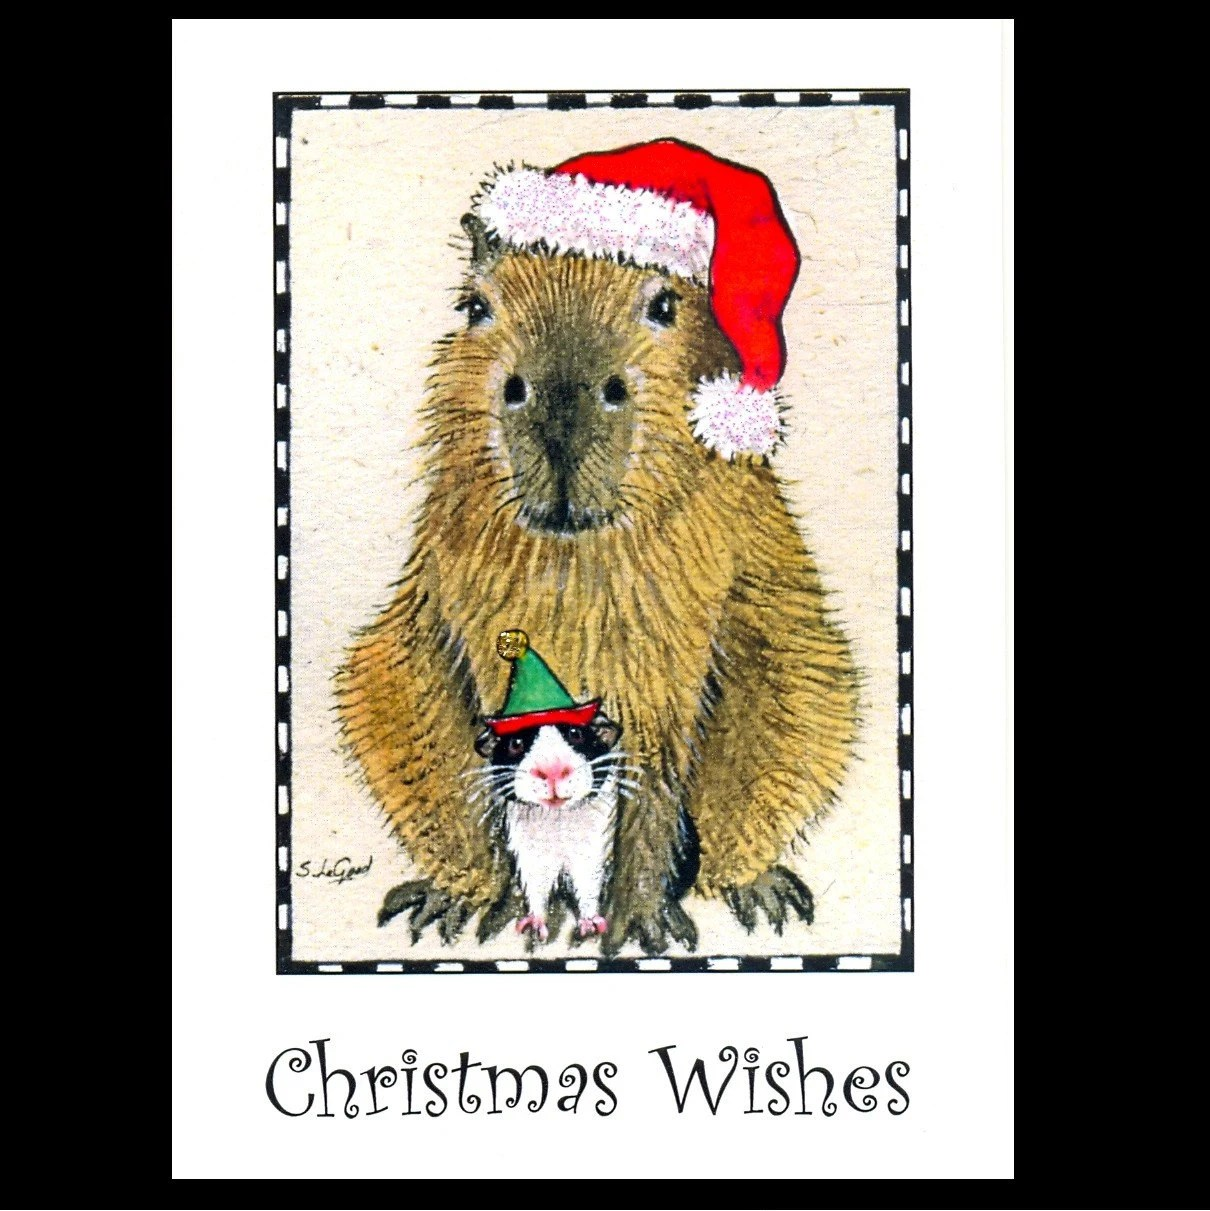 GUINEA PIG CAPYBARA CHRISTMAS CARDS BY SUZANNE LE GOOD